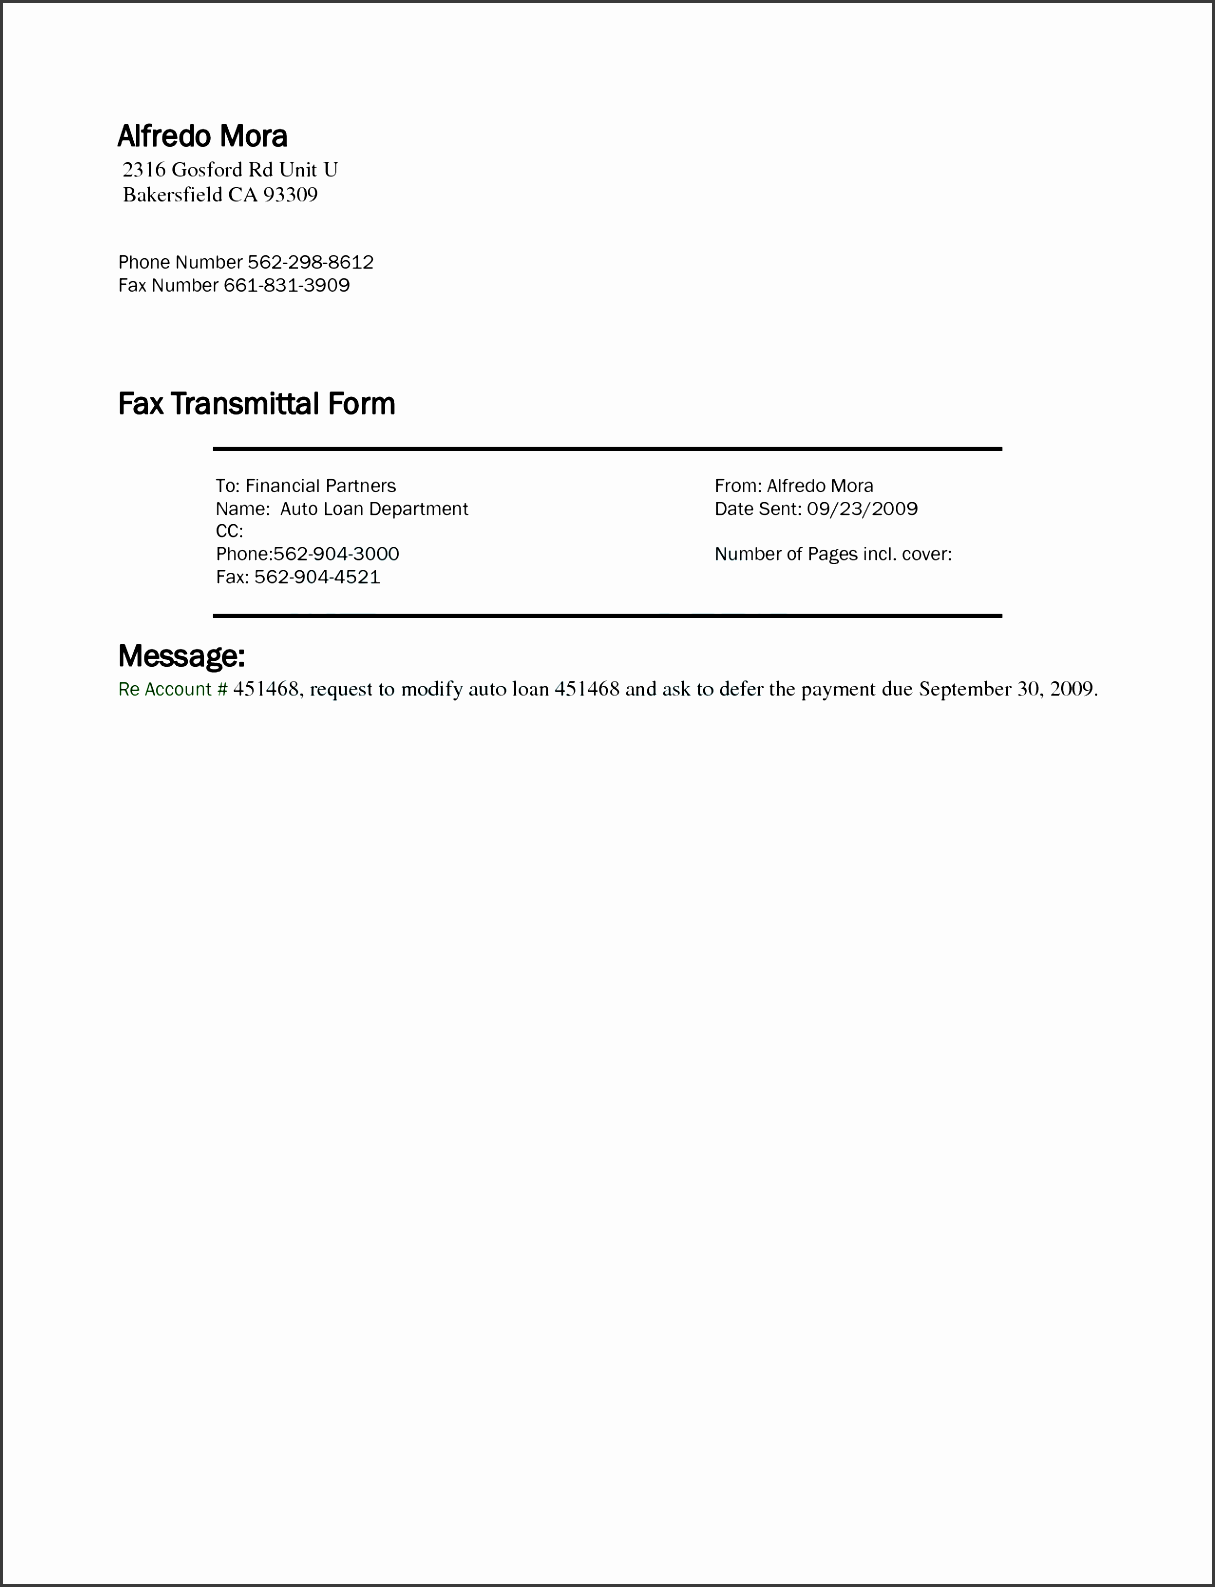 10 fax transmittal template